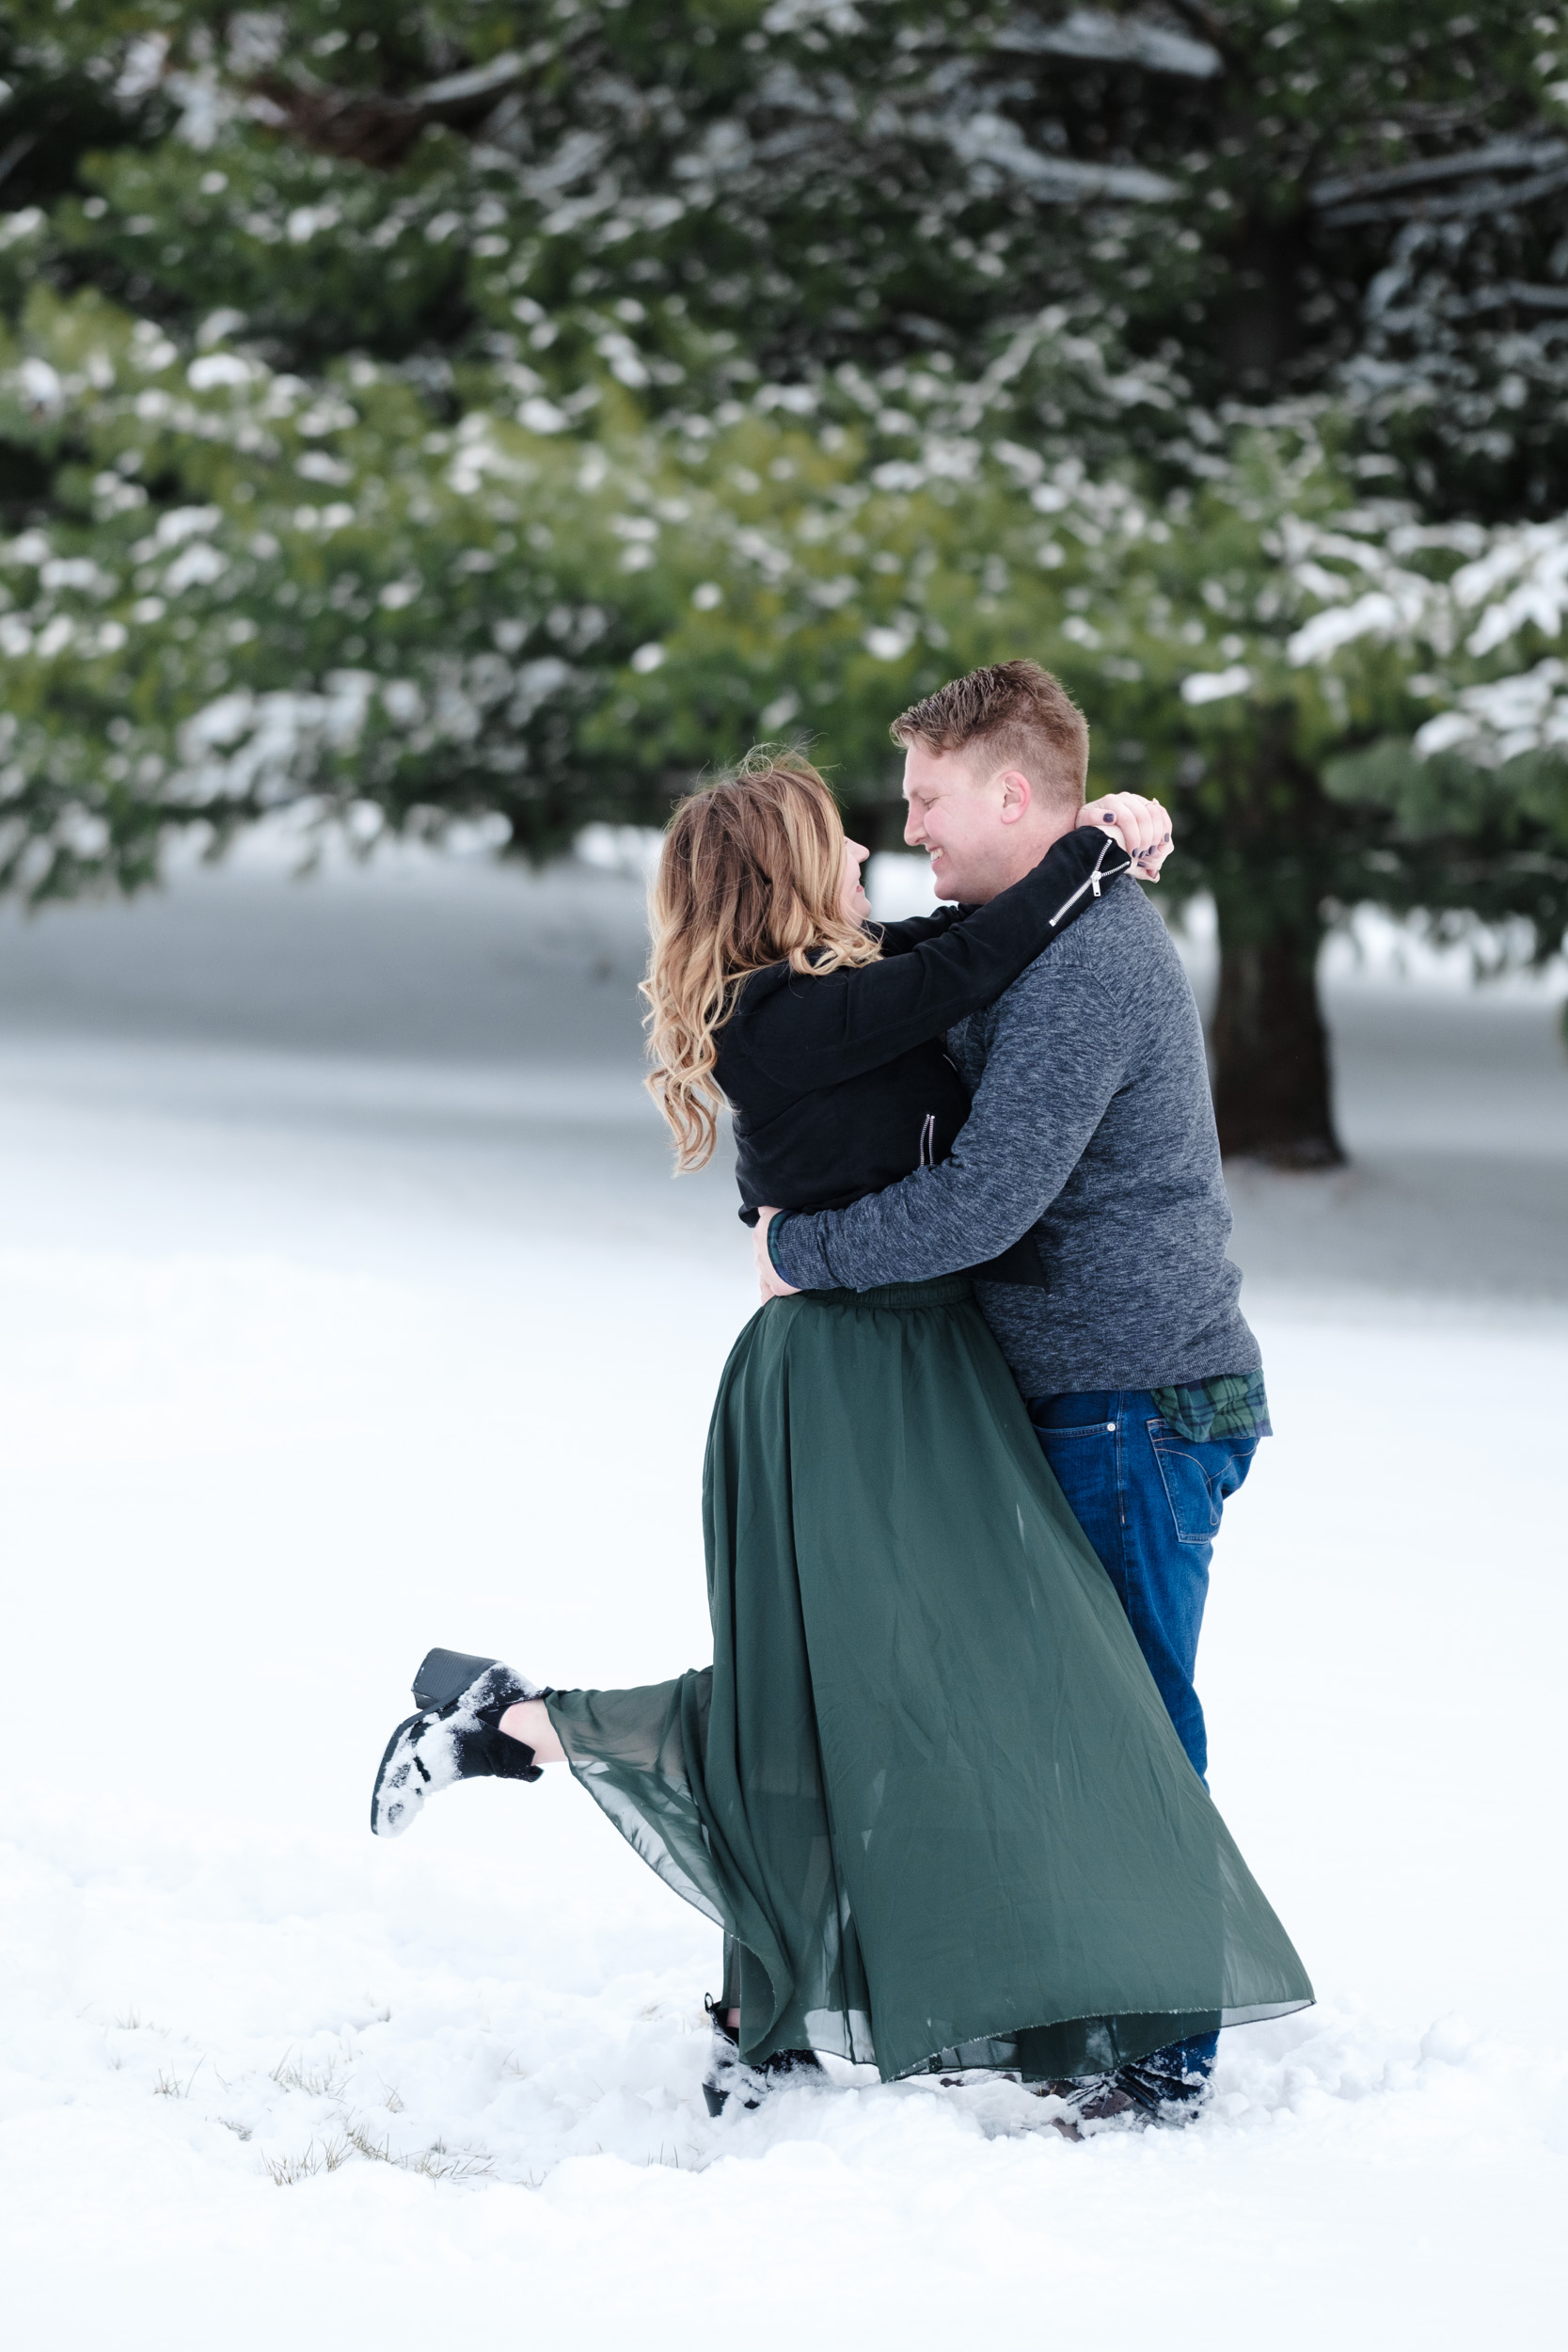 Engagement session of couple at Orchard Ridge Farms the Pavilion kissing in the snow by rockford wedding photographer B. adams photography